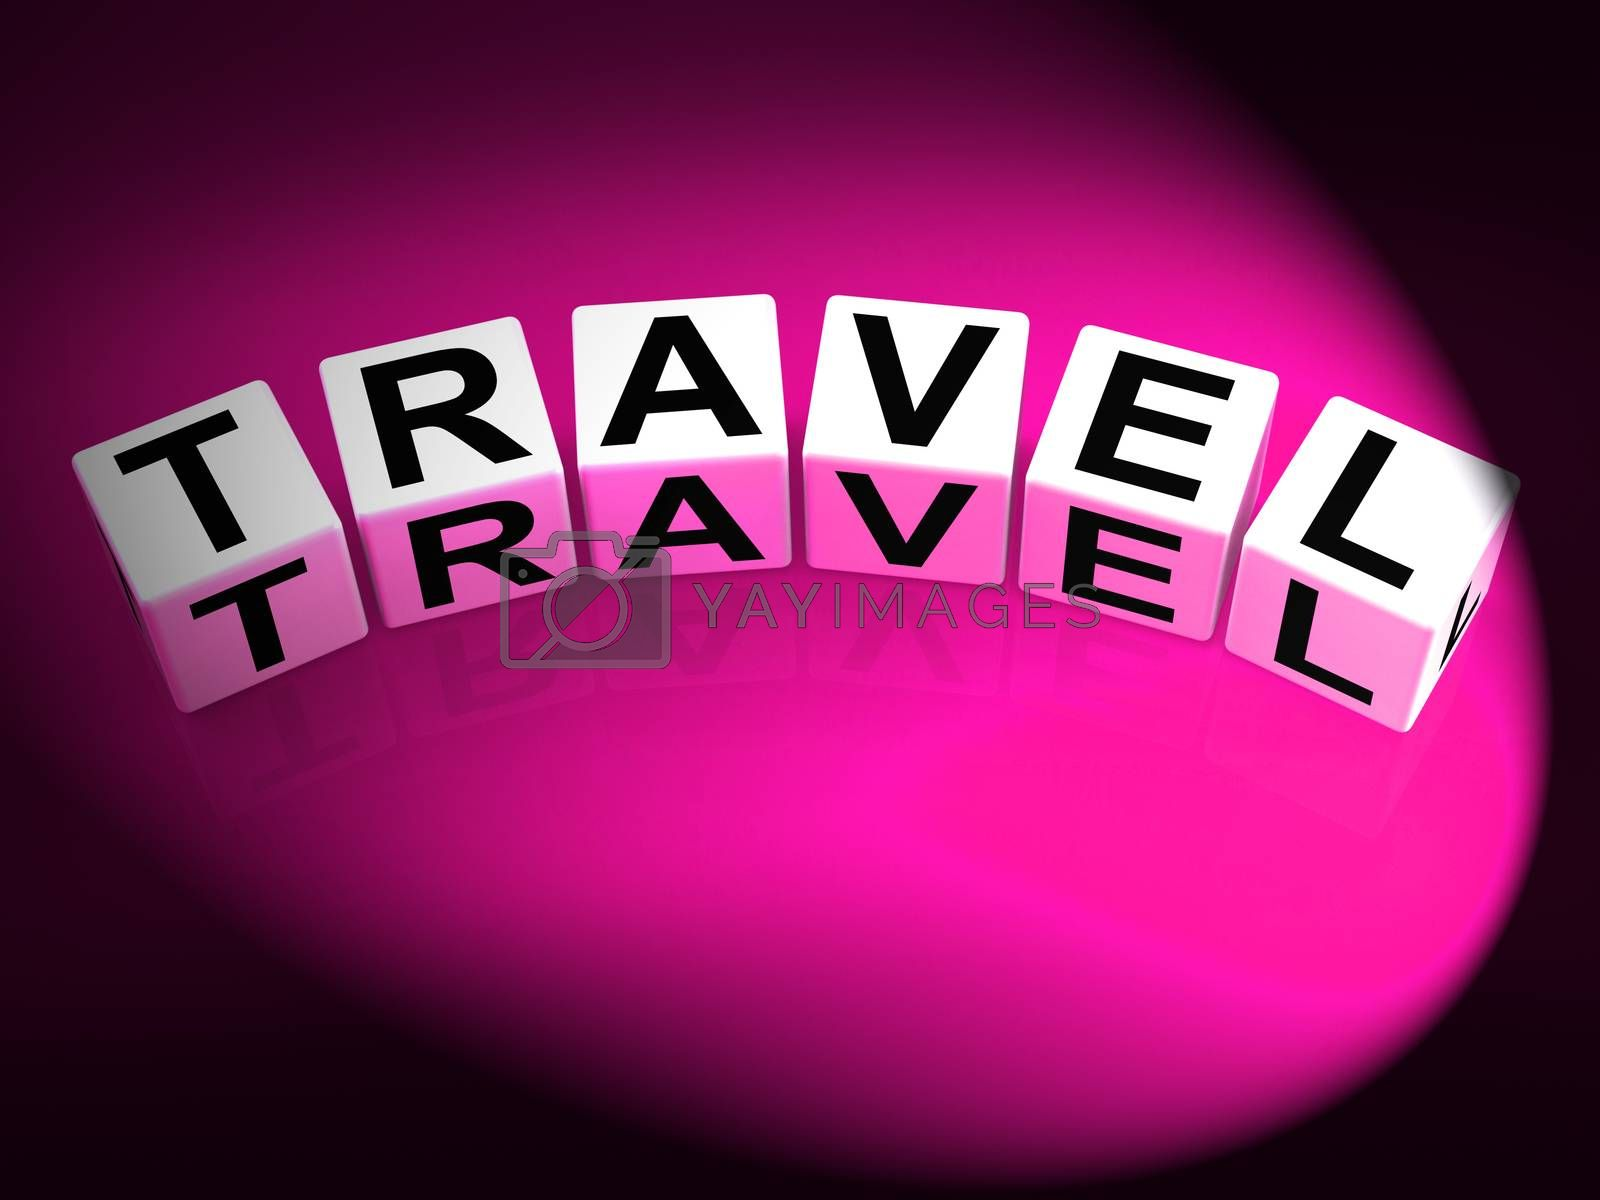 Travel Dice Show Traveling Touring and Trips by stuartmiles